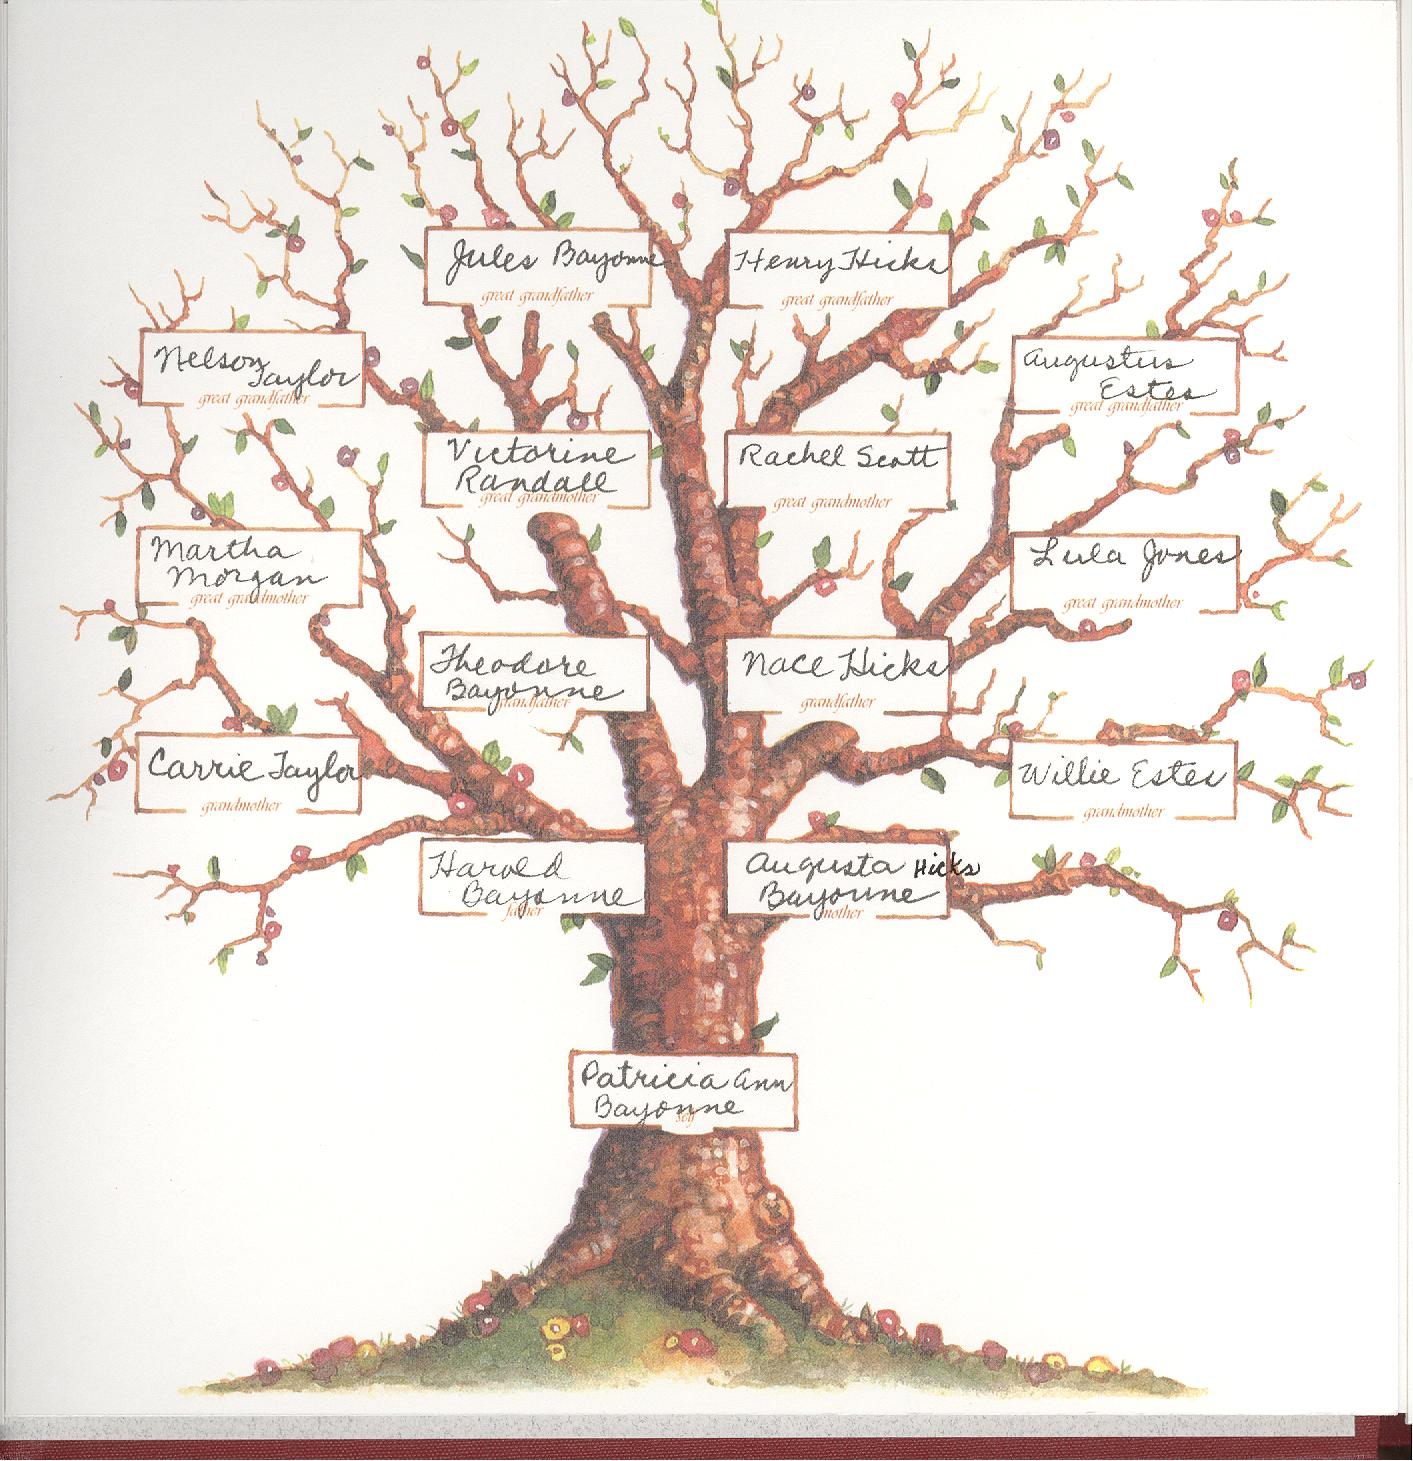 This is a graphic of Transformative Pictures of Family Trees